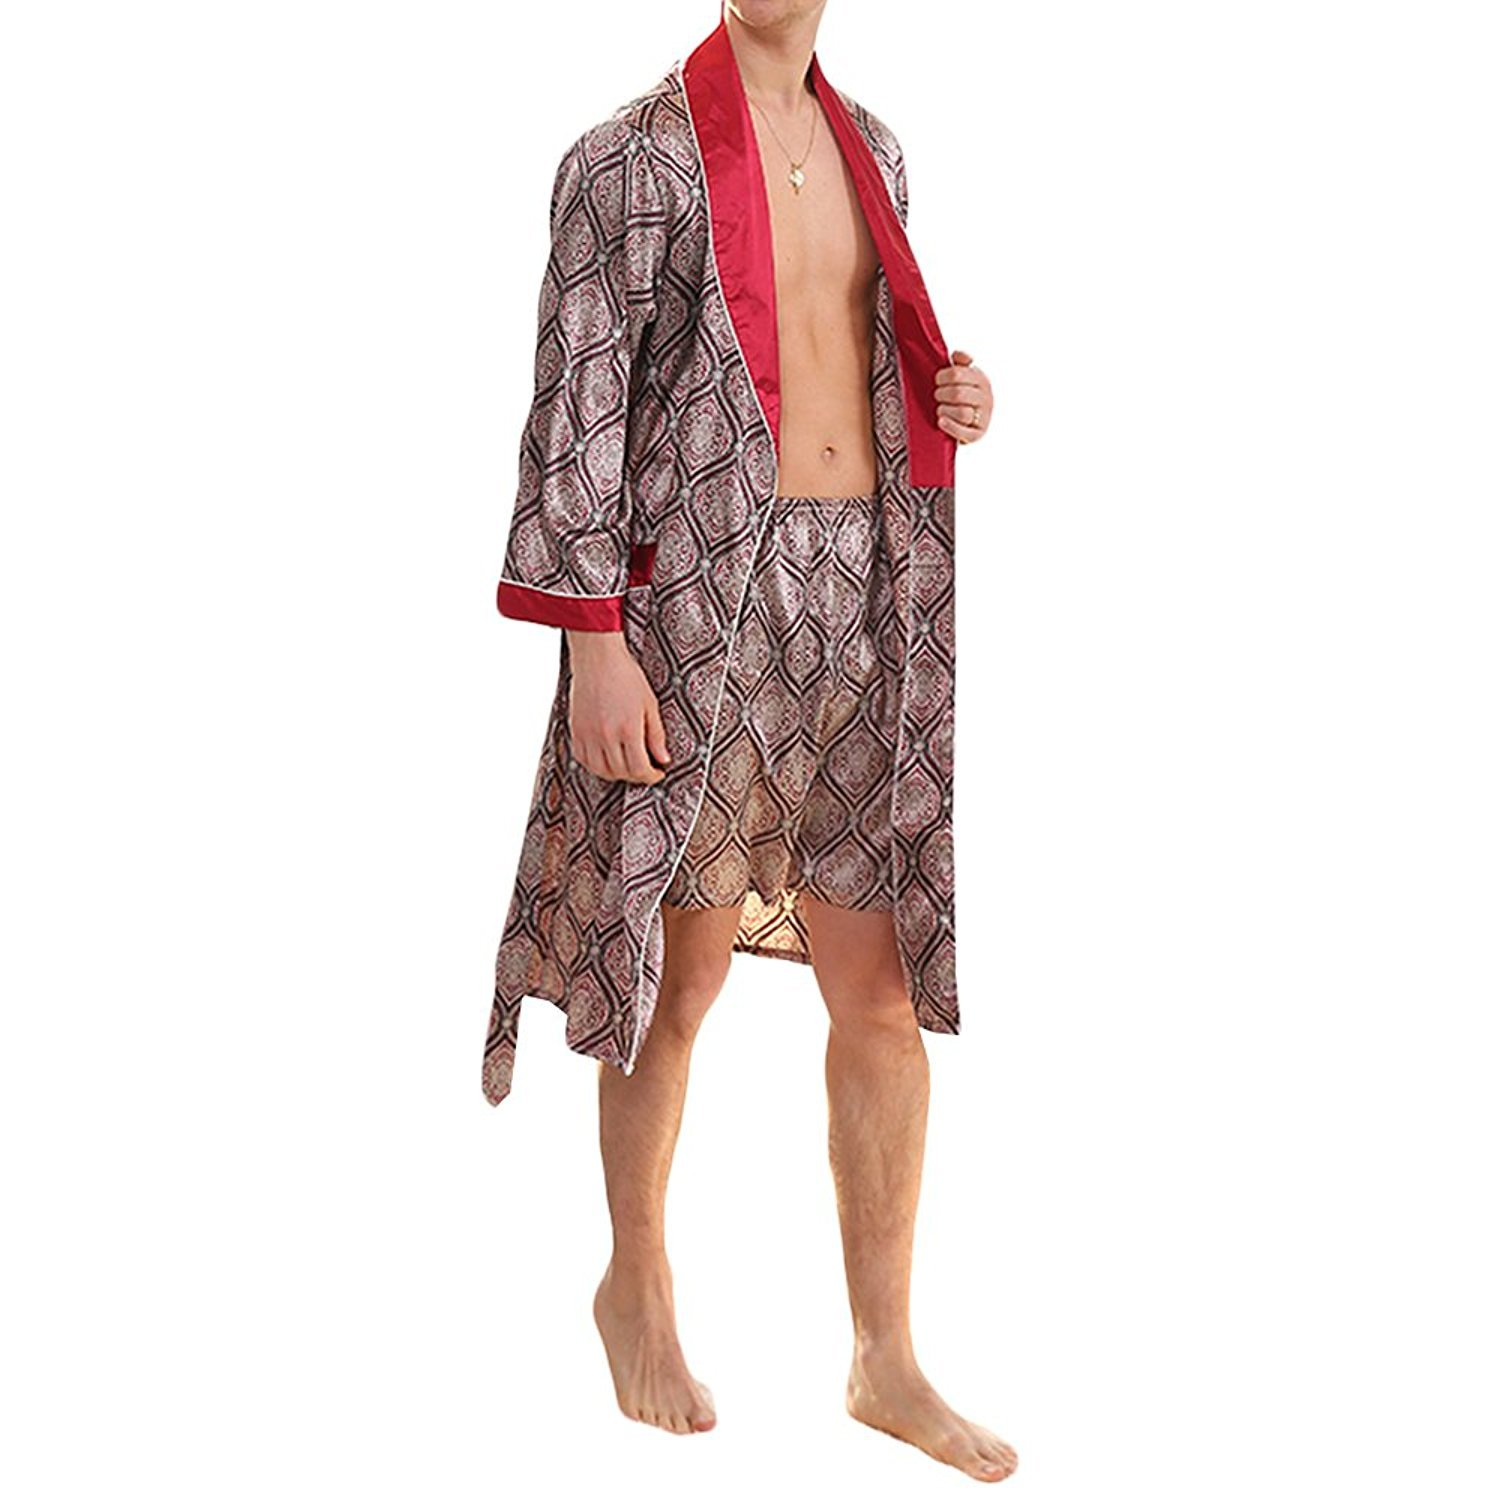 YIMANIE Mens Satin Robe Lightweight Silk Spa Bathrobe with Shorts Nightgown Long Sleeve House Kimono Printed Bathrobe Set YMN-SY-880001-ZY015